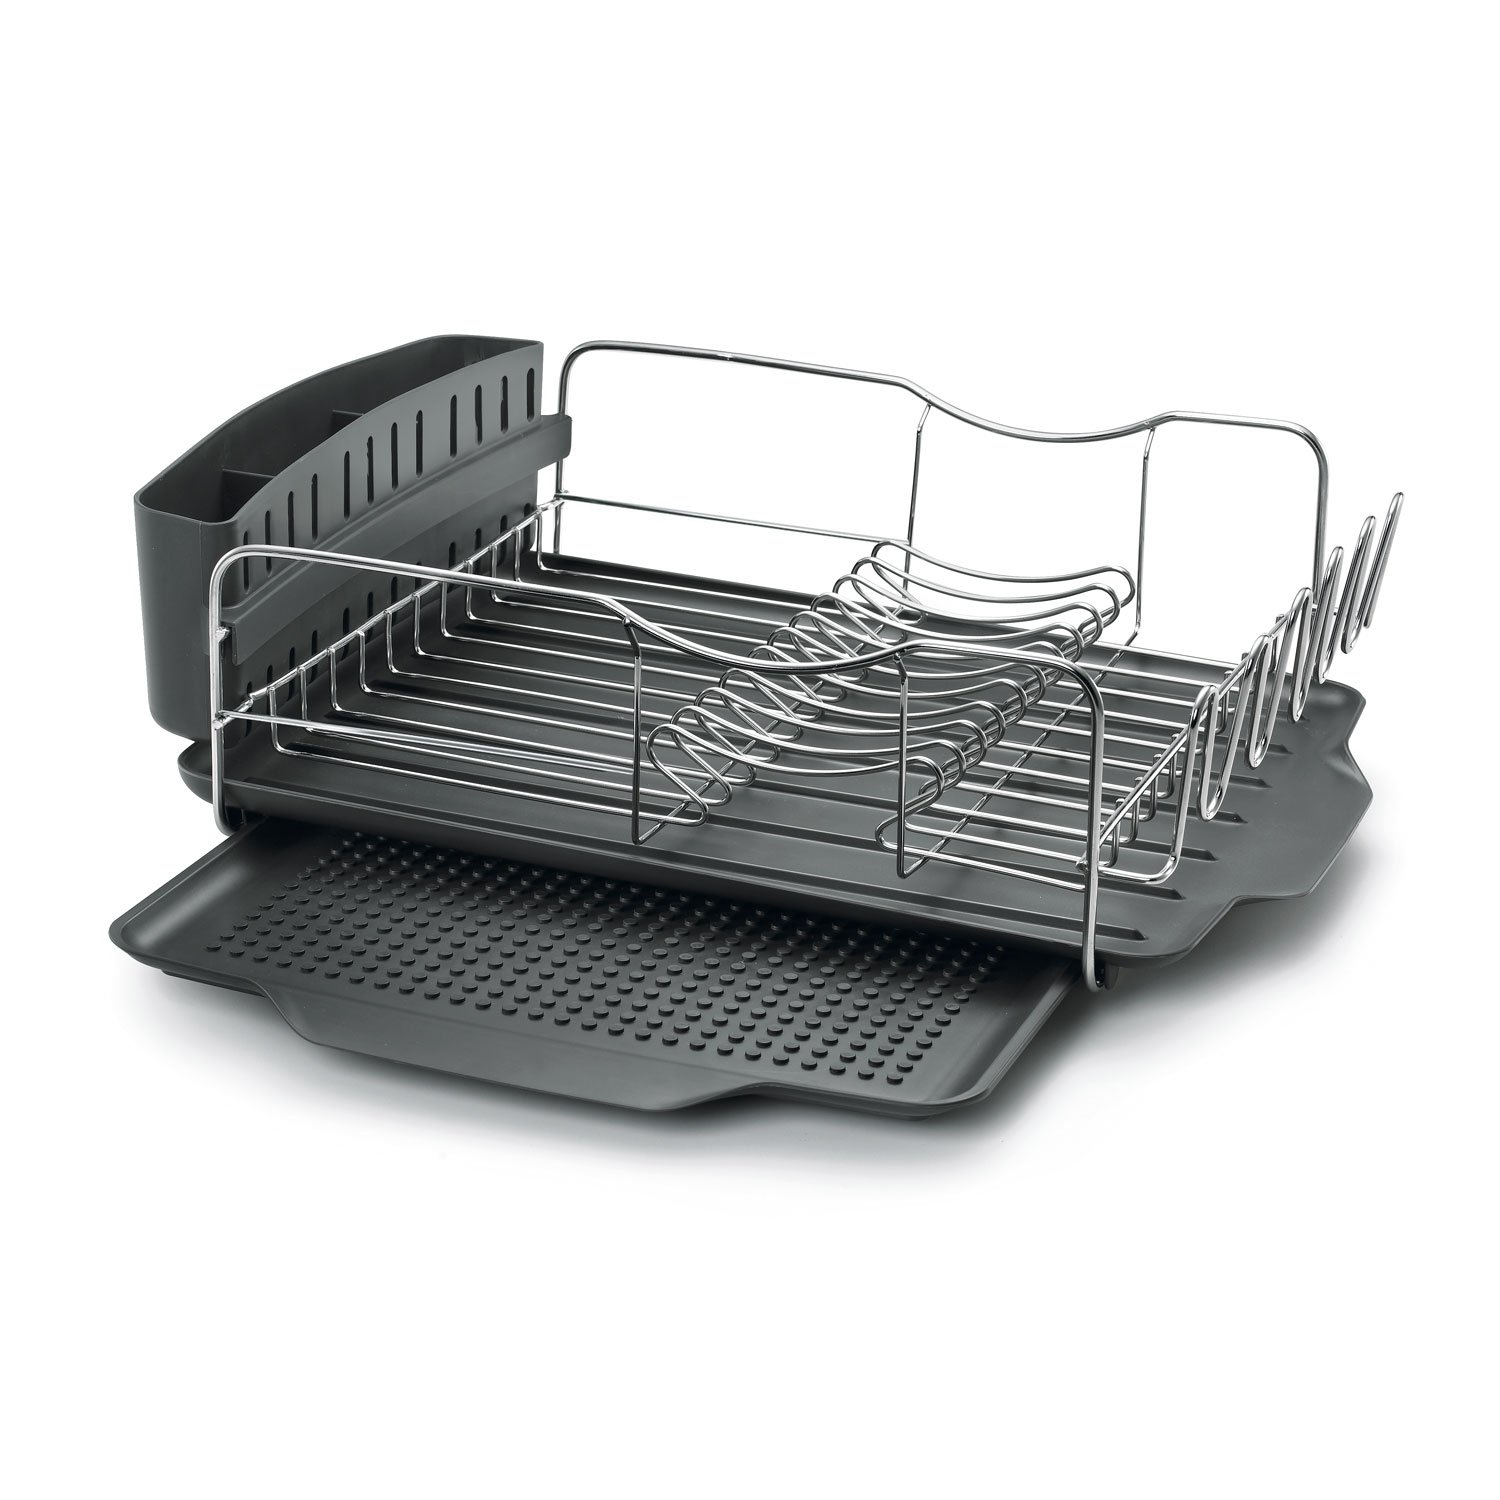 Polder Dish Rack U0026 Tray 4 PC Combou2013 Advantage System Includes Rack, Drain  Tray, Removable Drying Tray U0026 Cutlery Holder U2013 Stainless Steel U0026 Plastic